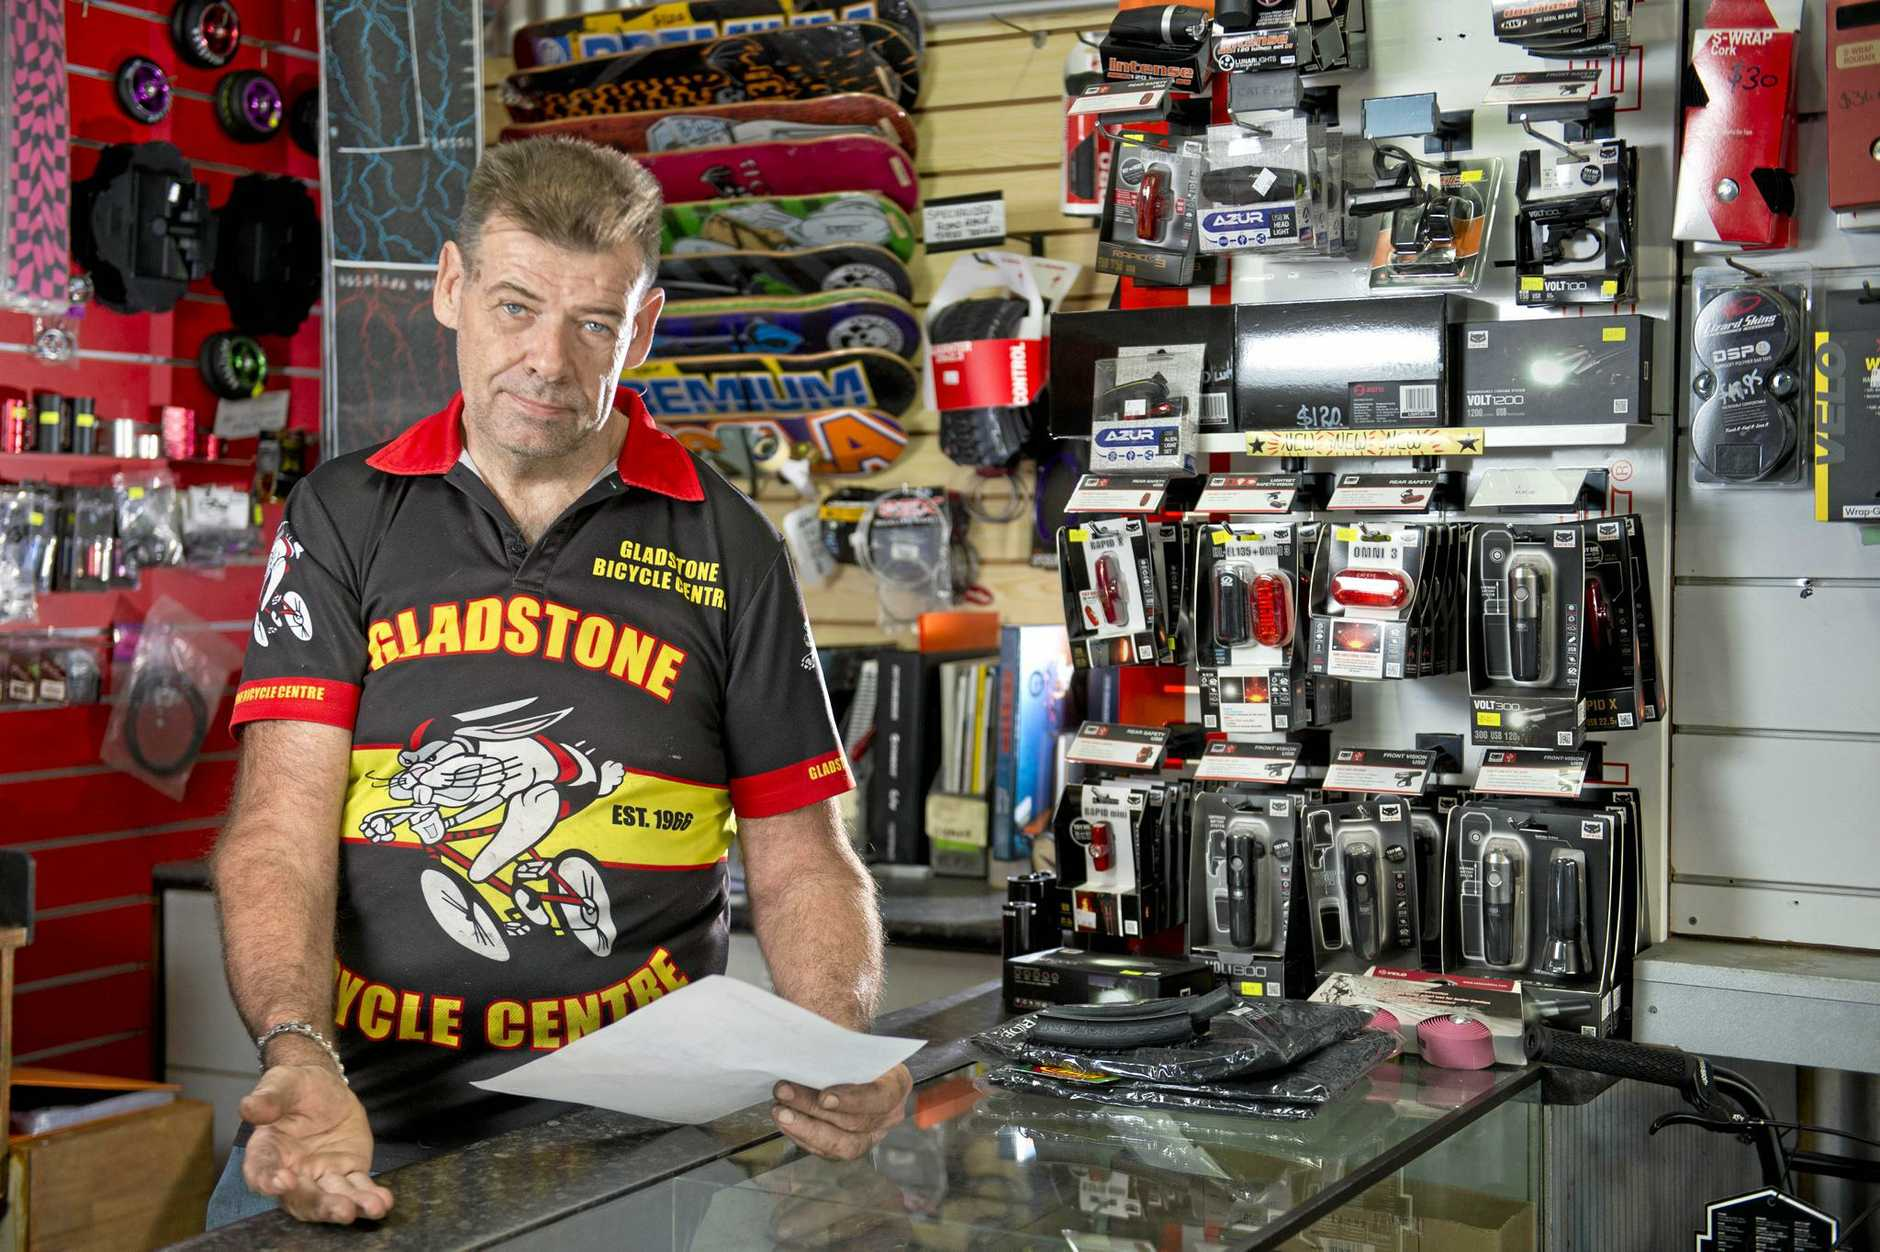 SCAM: David McIntosh from Gladstone Bicycles has received multiple phone calls about dodgy invoices.